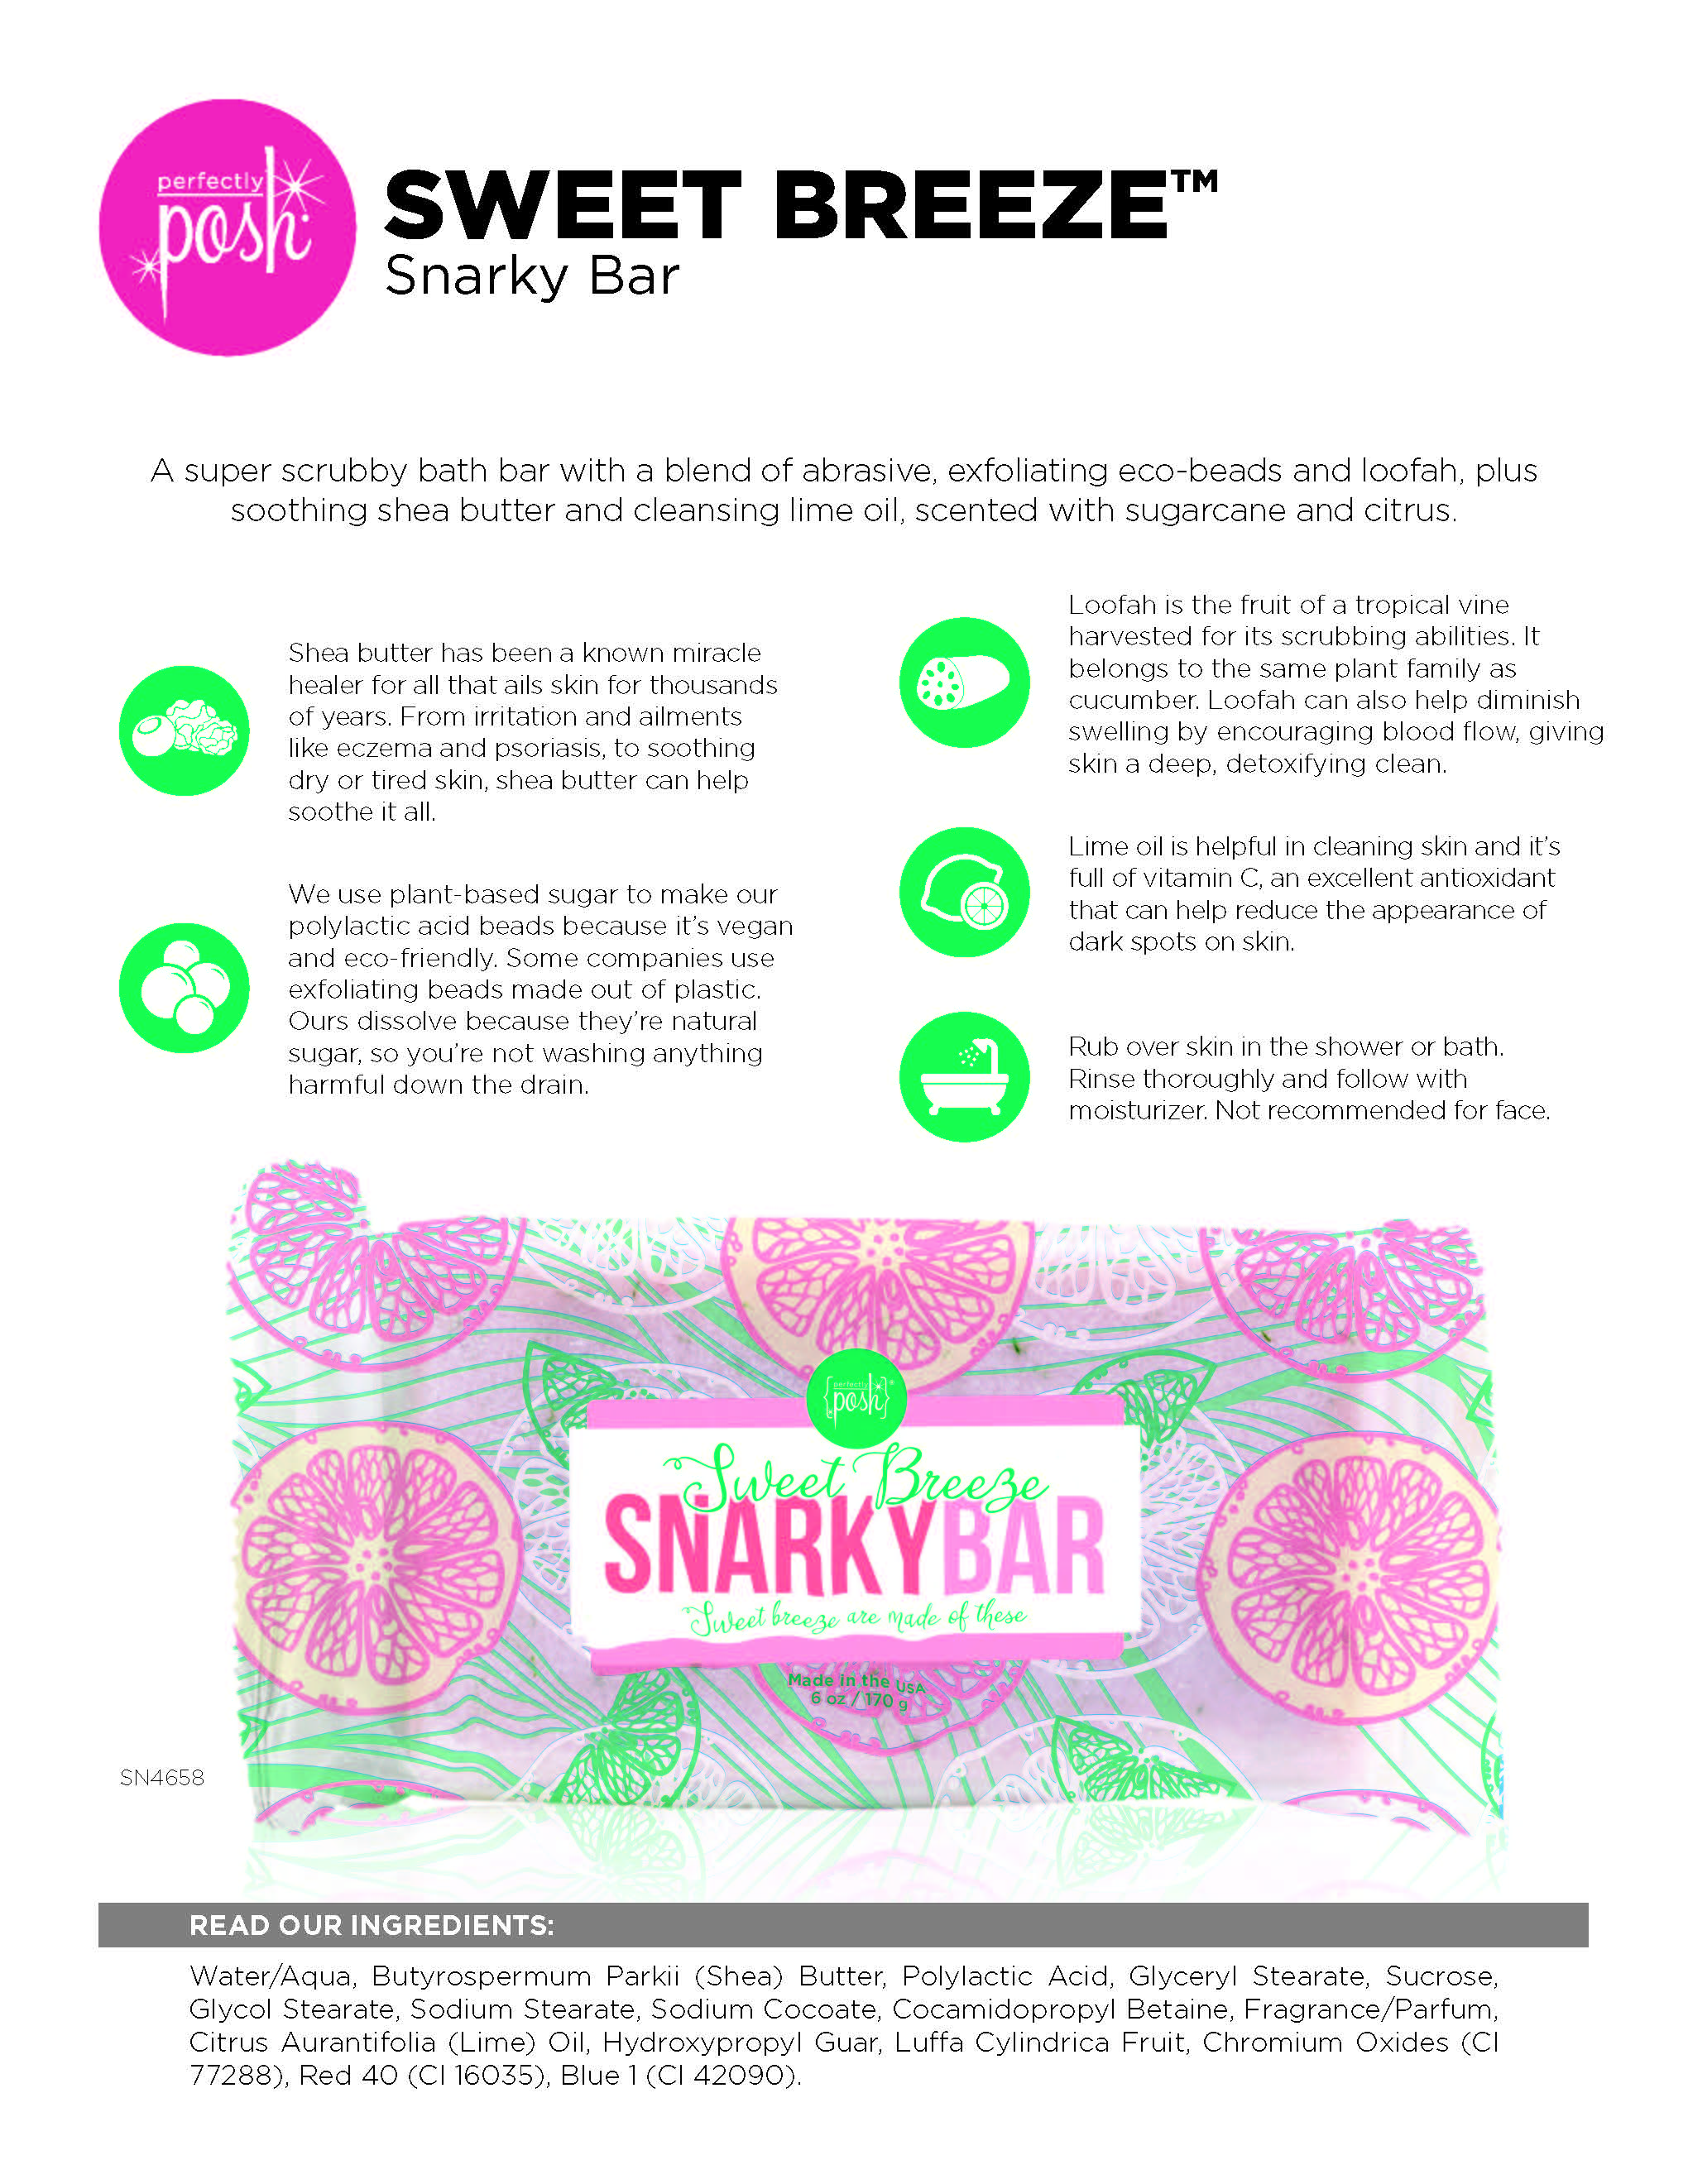 Sweet Breeze Snarky Bar